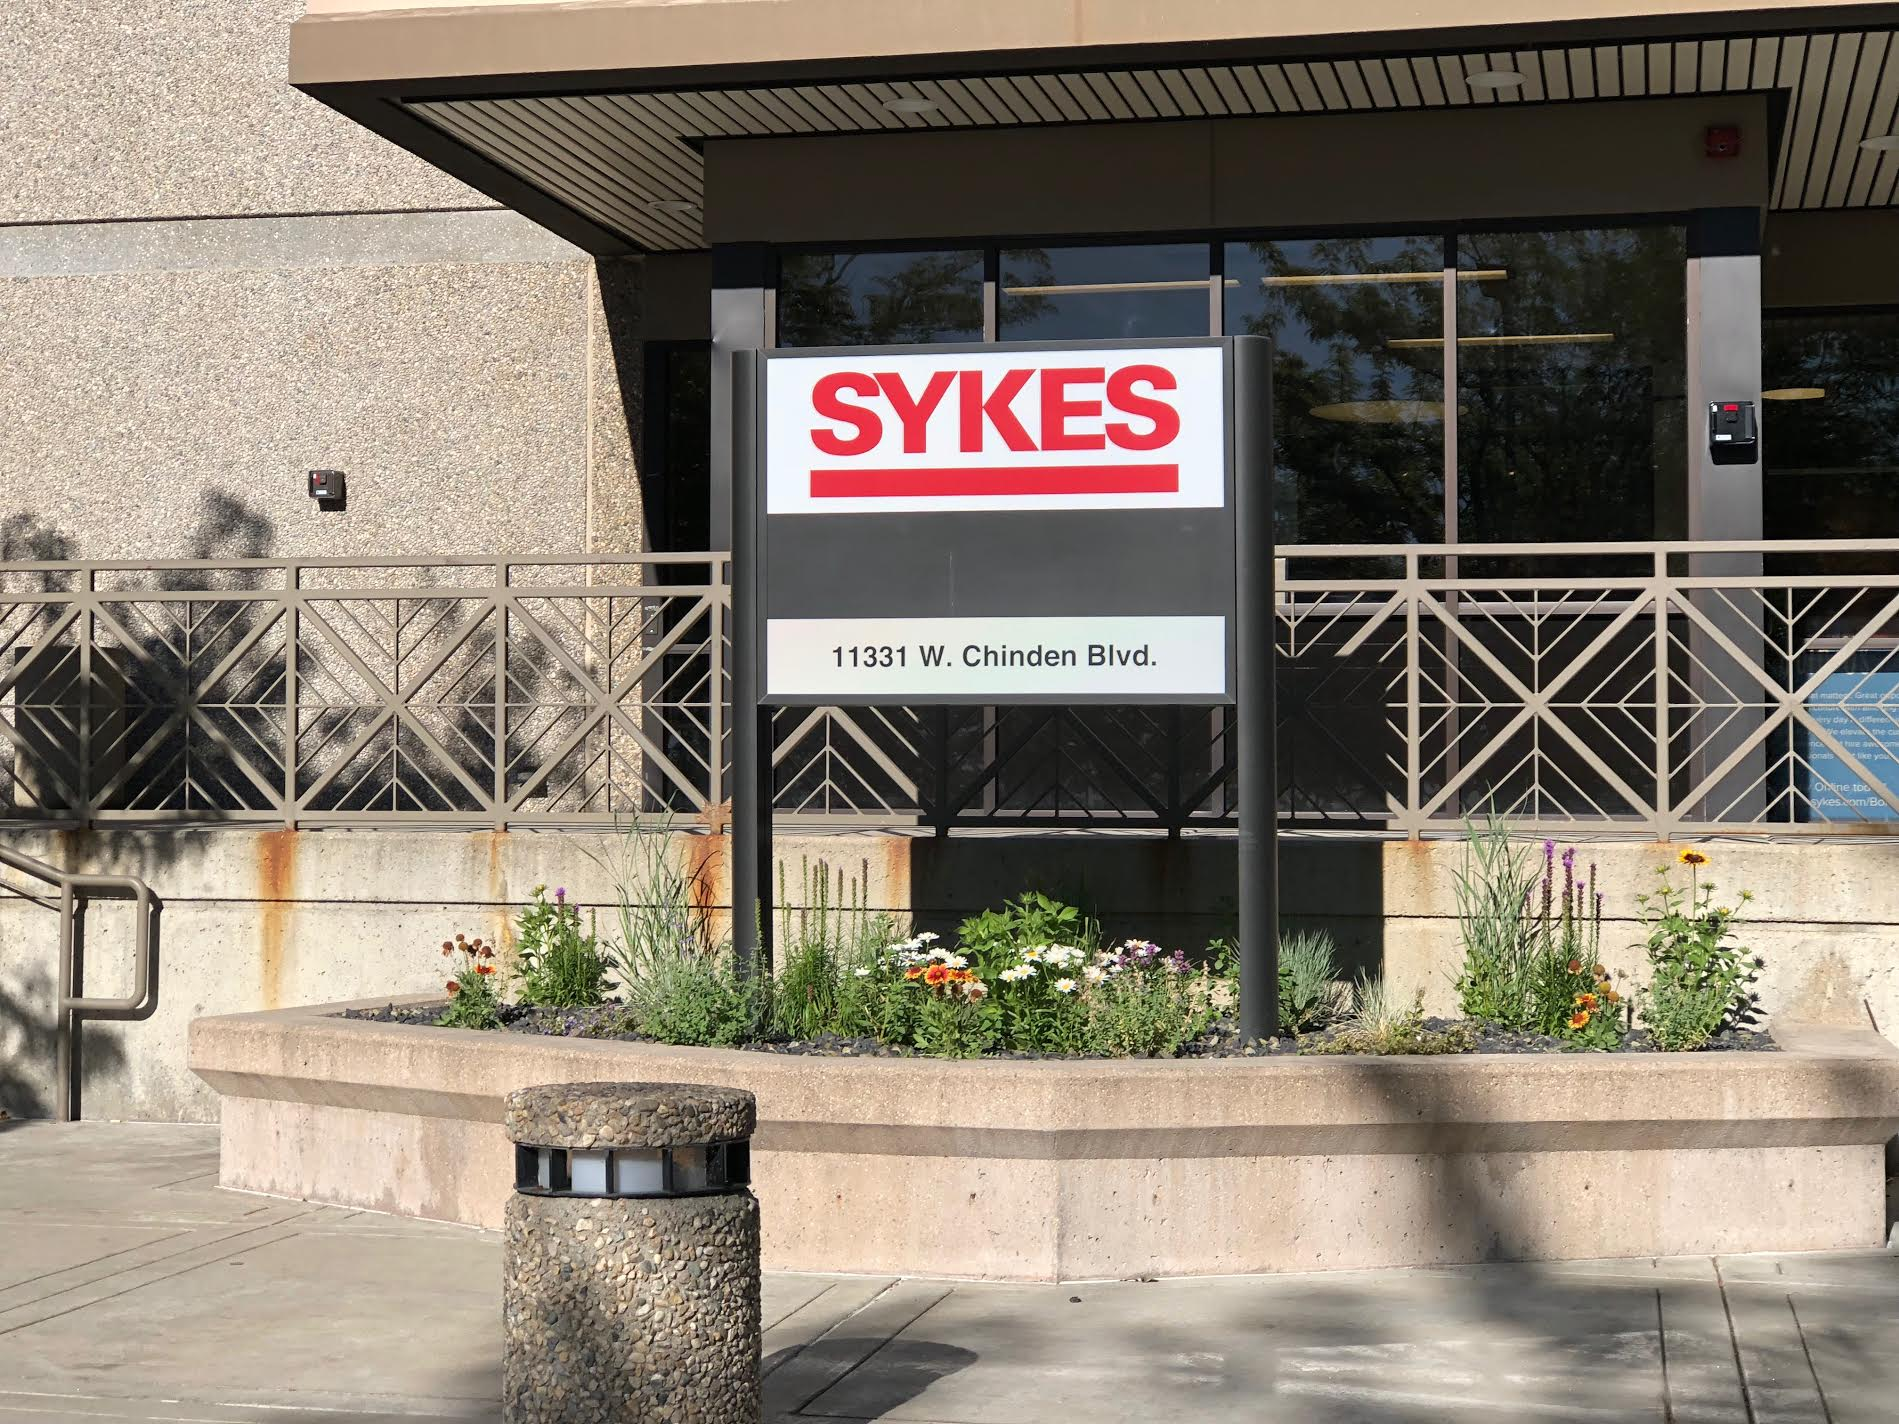 The SYKES Boise call center on Chinden Tuesday evening. Photo: Don Day/BoiseDev